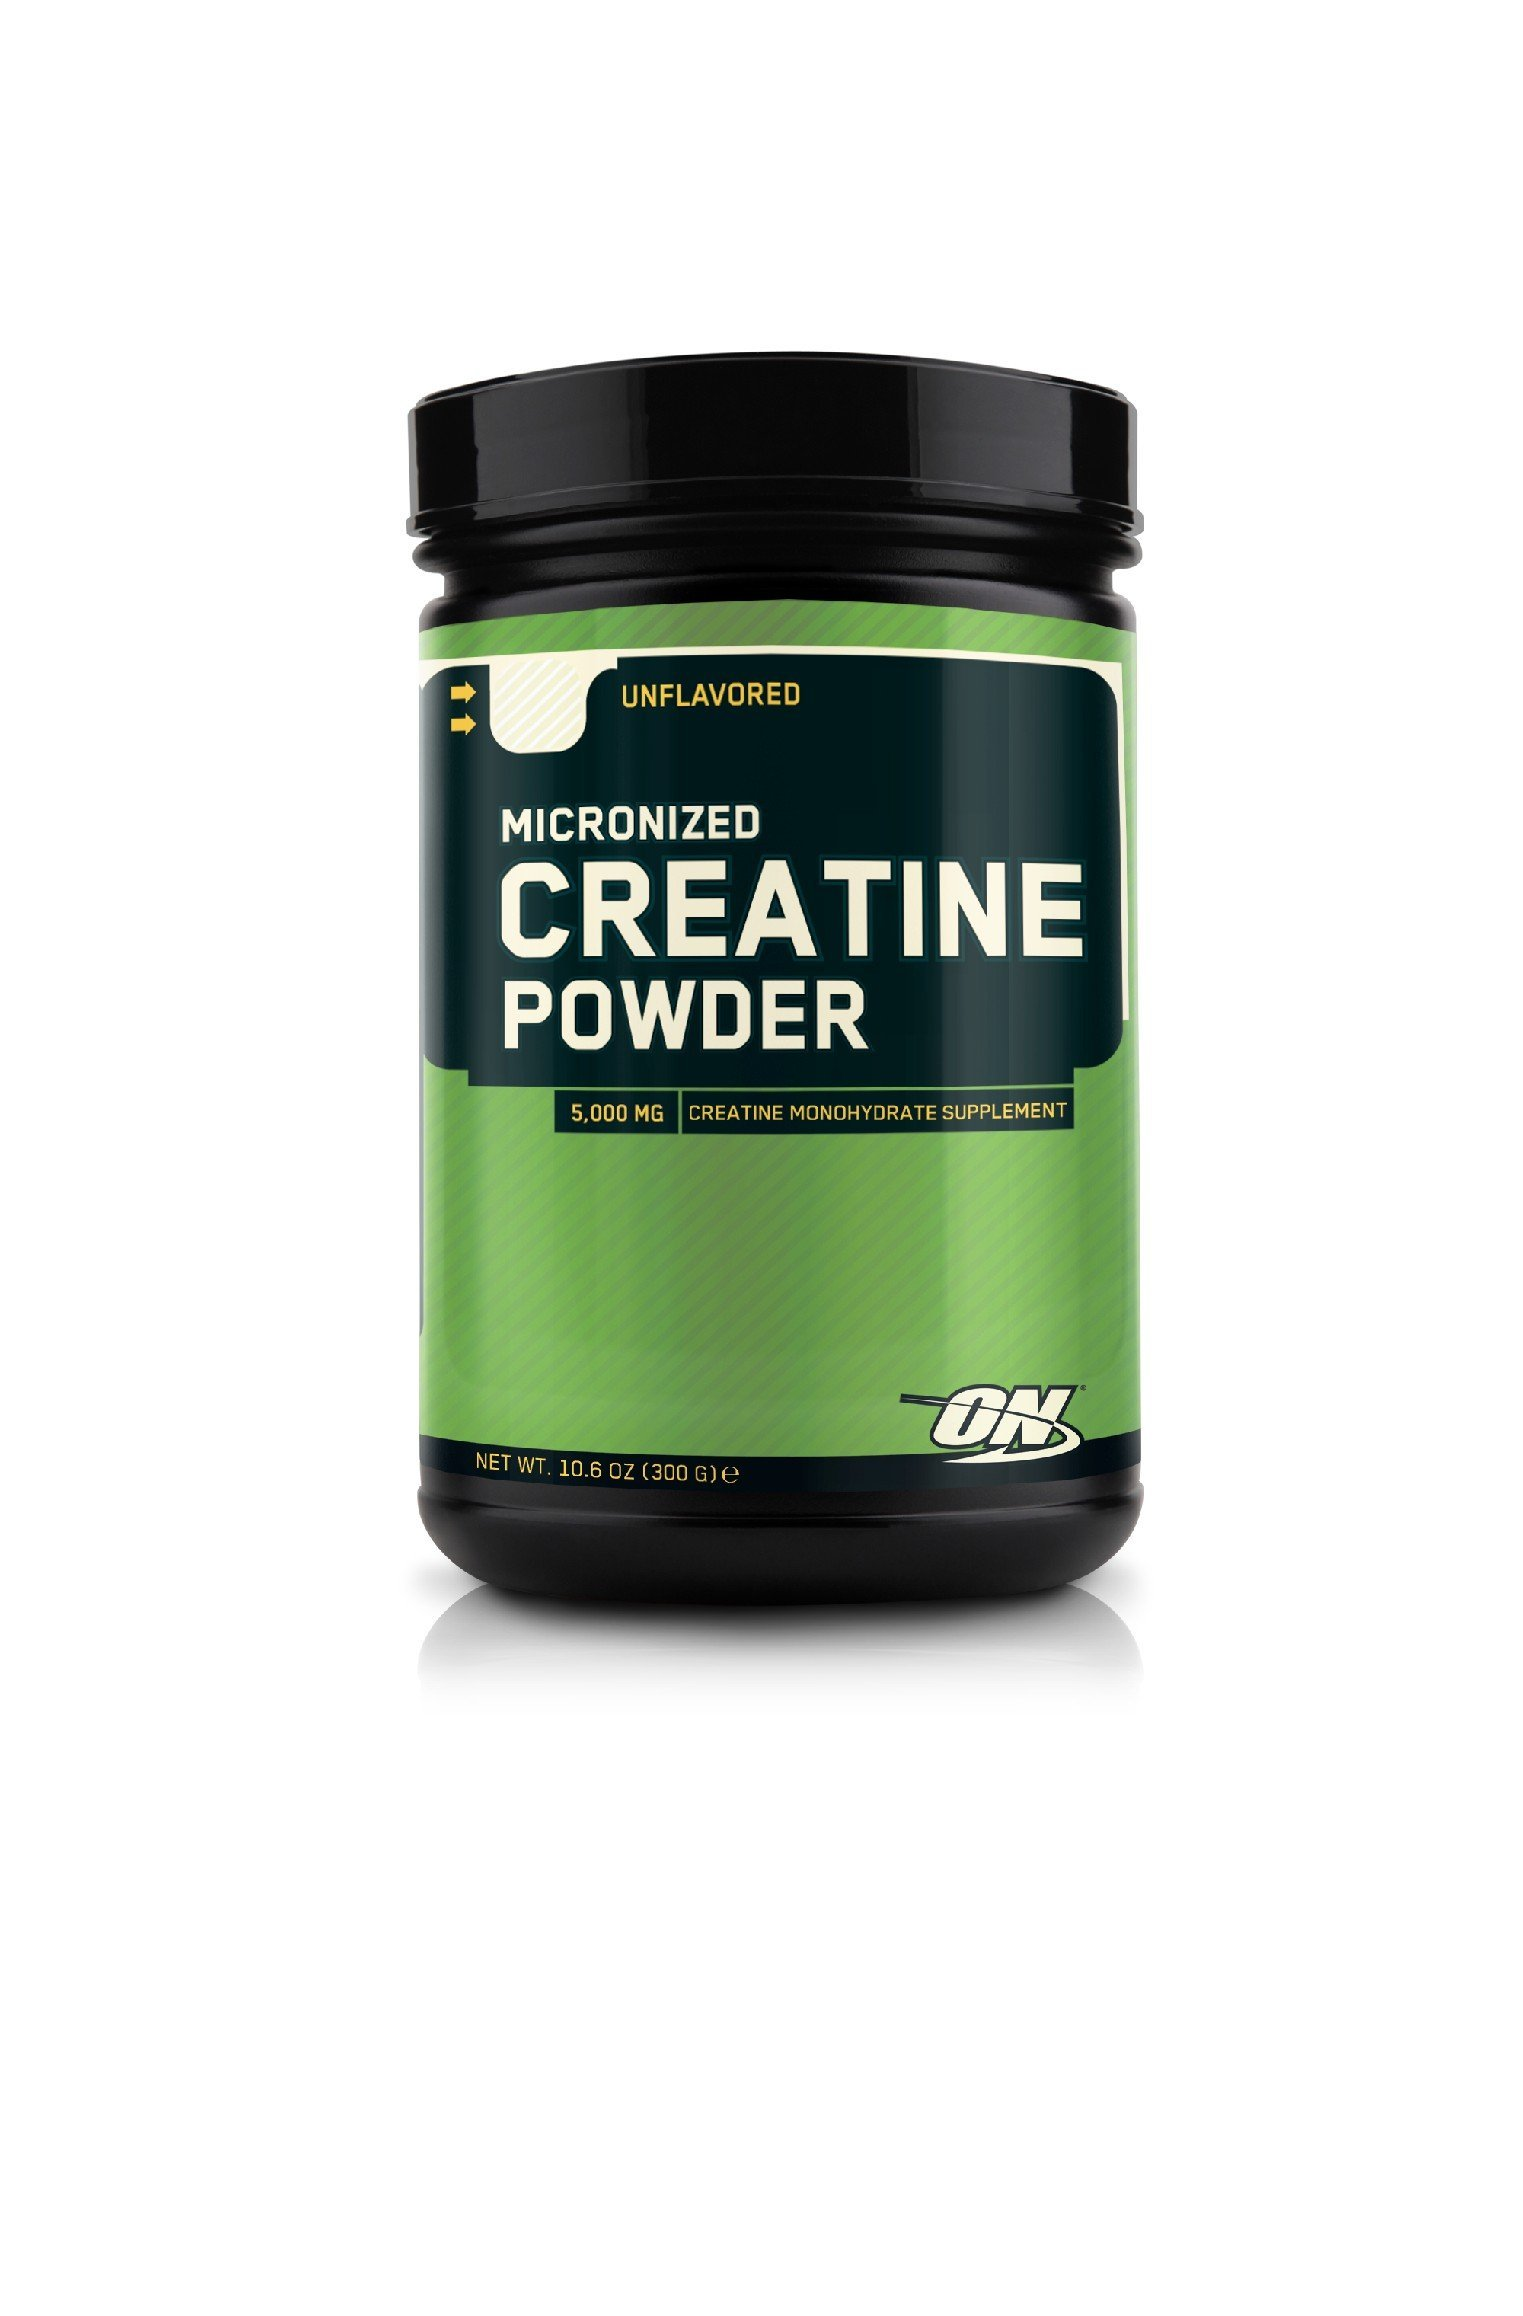 Optimum Nutrition Micronized Creatine Monohydrate Powder, Unflavored, Keto Friendly, 57 Servings